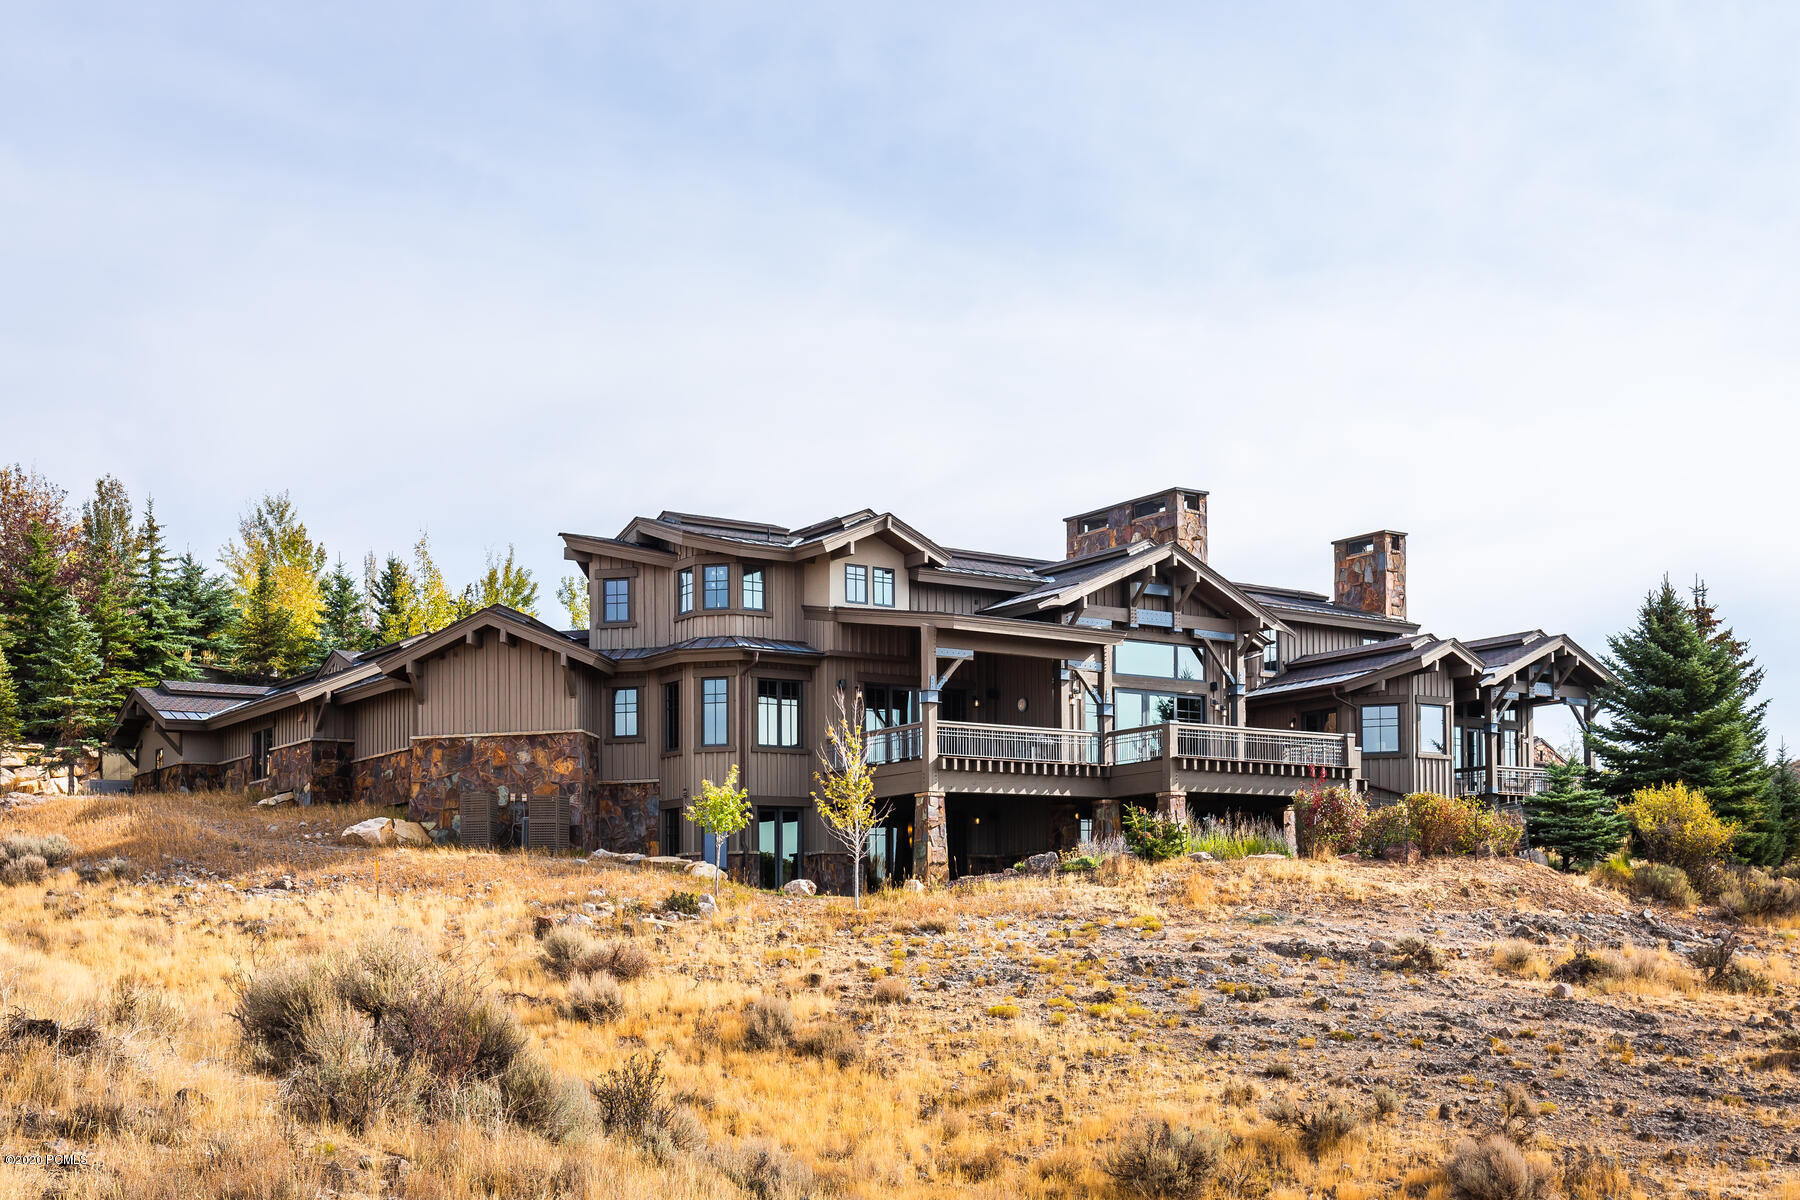 3174 Blue Sage Trail, Park City, Utah 84098, 6 Bedrooms Bedrooms, ,9 BathroomsBathrooms,Single Family,For Sale,Blue Sage Trail,12003967